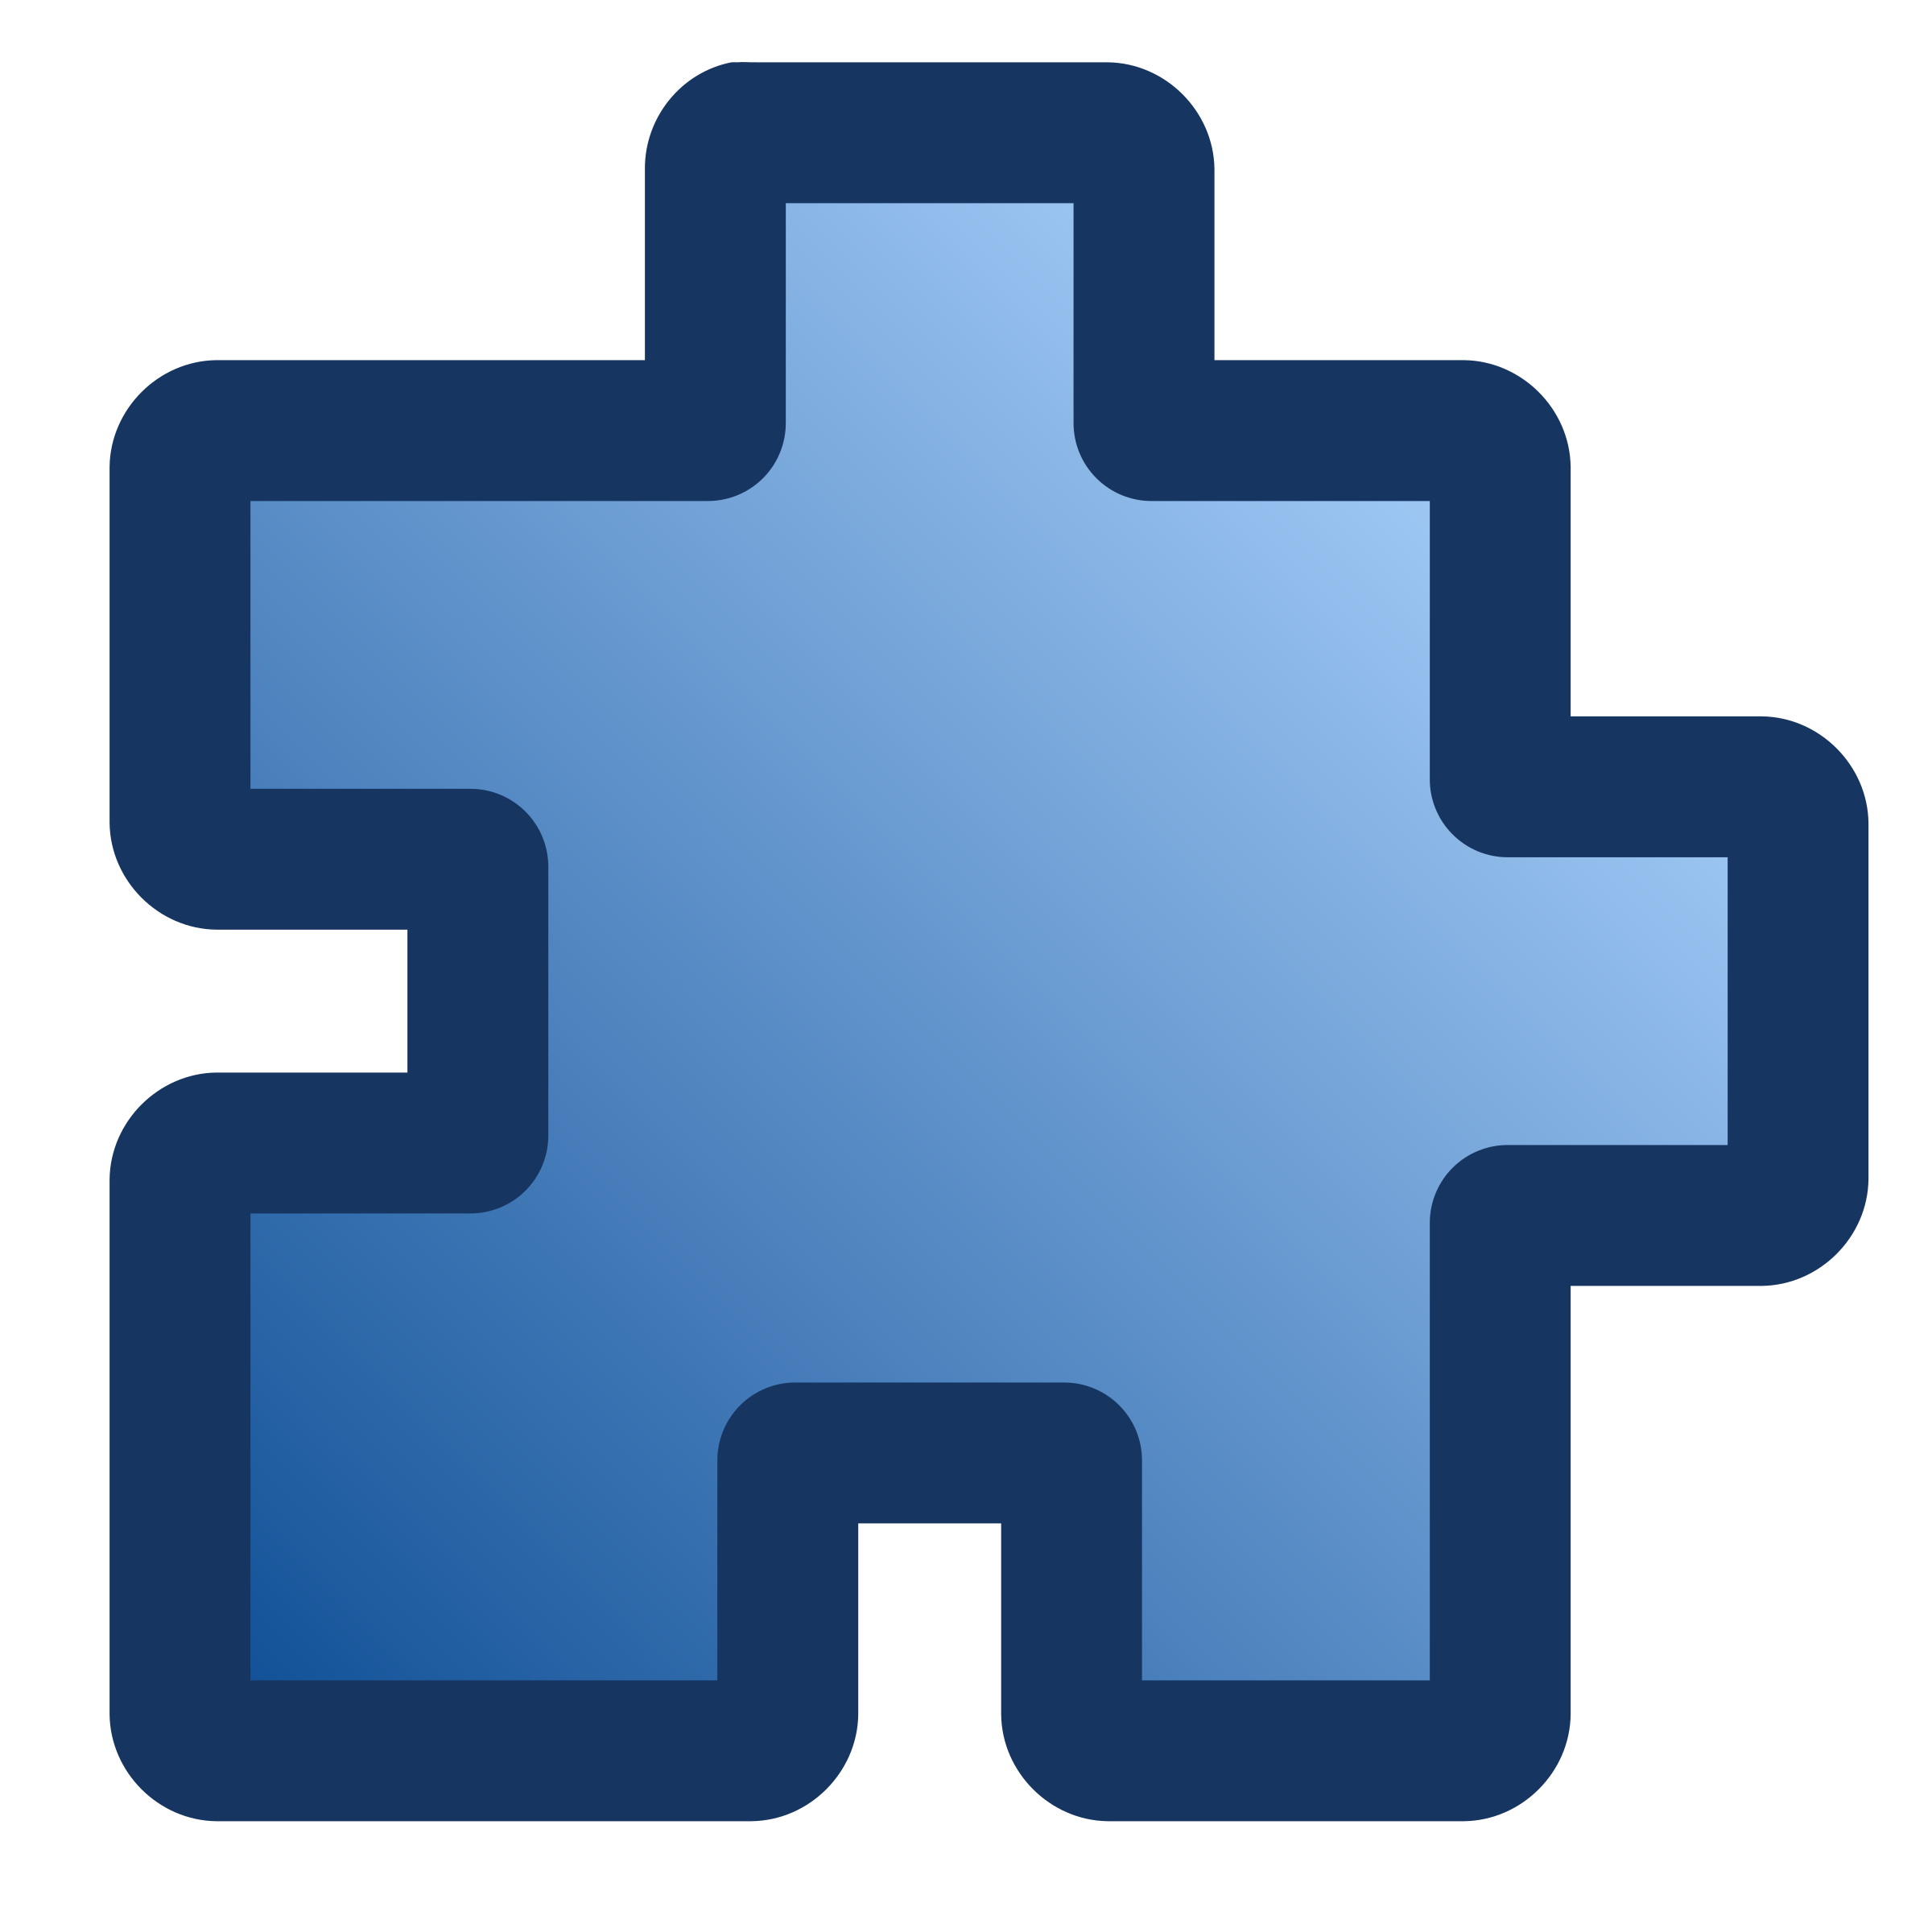 icon-puzzle-blue by jean_victor_balin